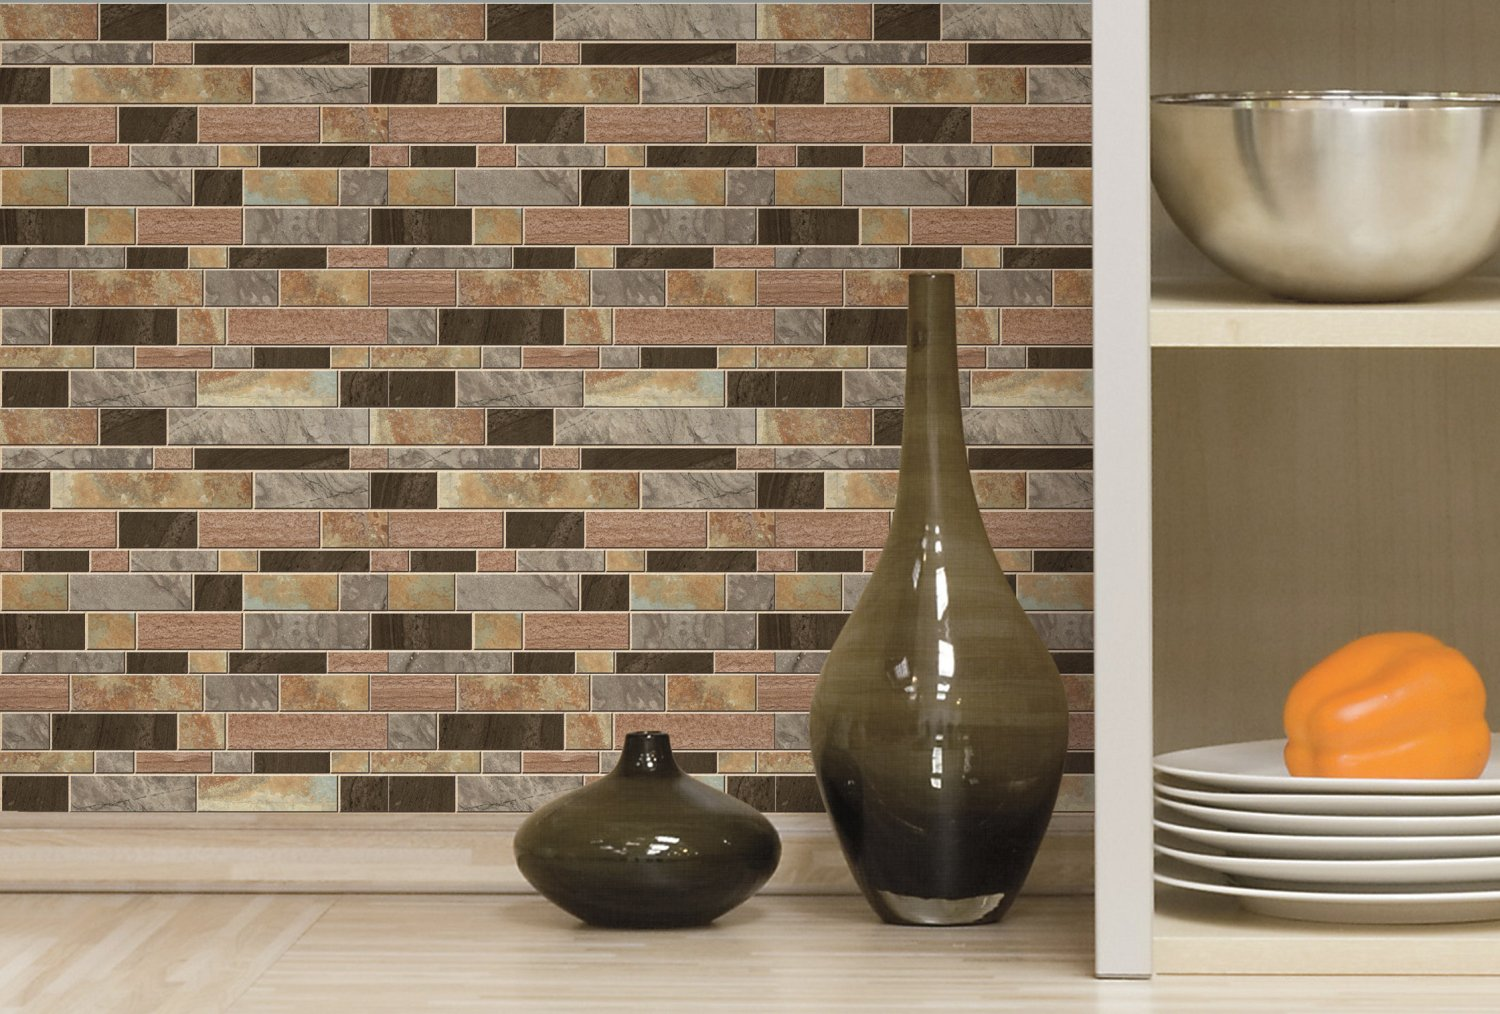 RoomMates Modern Long Stone Peel and Stick Tile Backsplash, 4-pack 10.5'' X 10.5'' by RoomMates